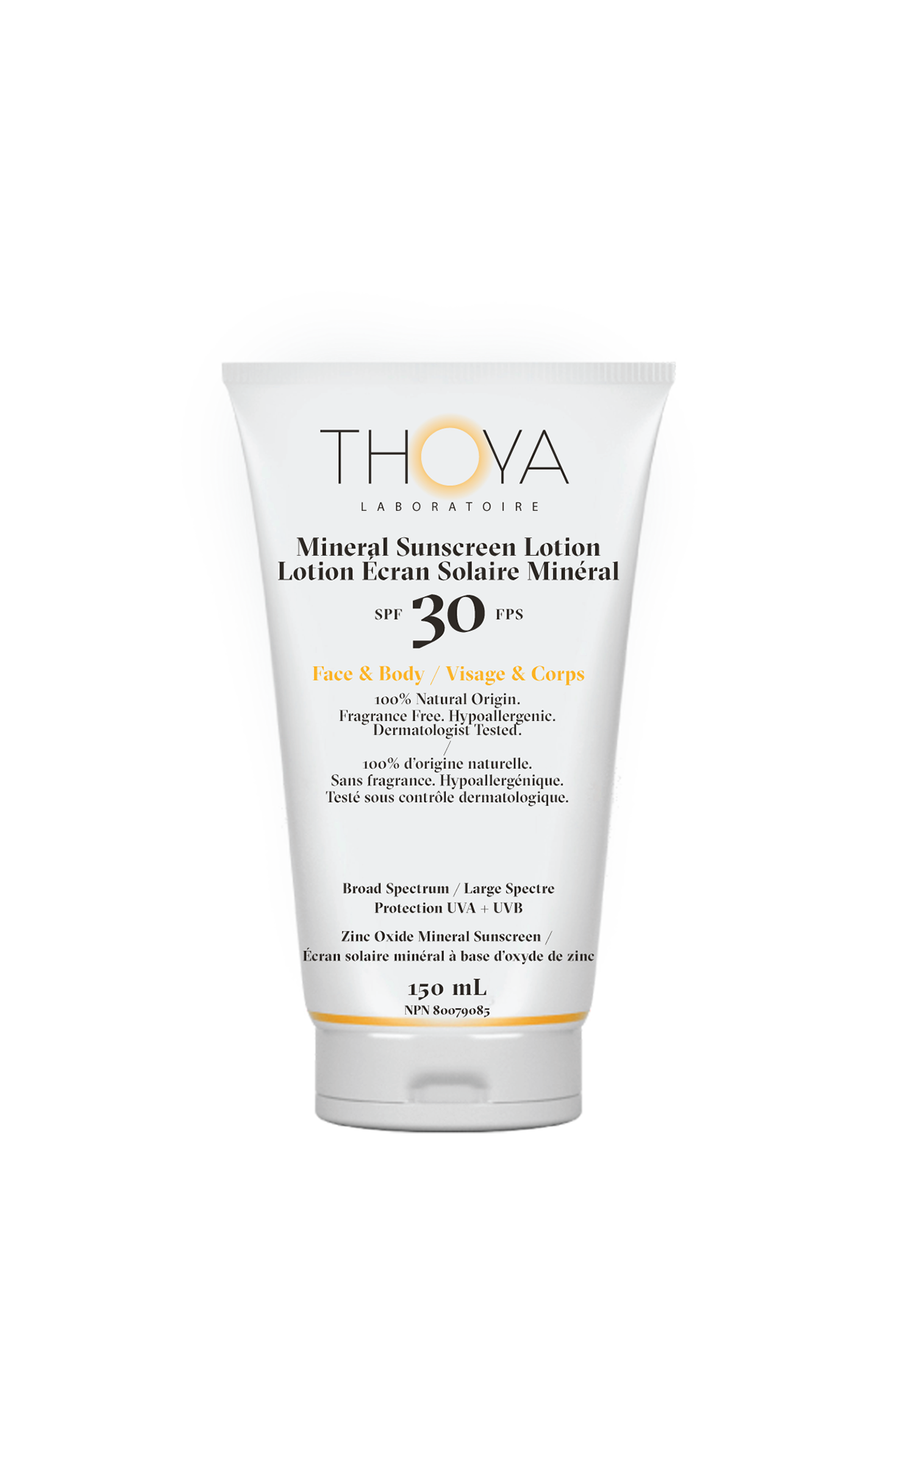 Thoya All Natural Mineral Sunscreen - Zinc Oxide UV Filter - Best natural sun care - Hypoallergernic - Dermatologist tested - Fragrance free